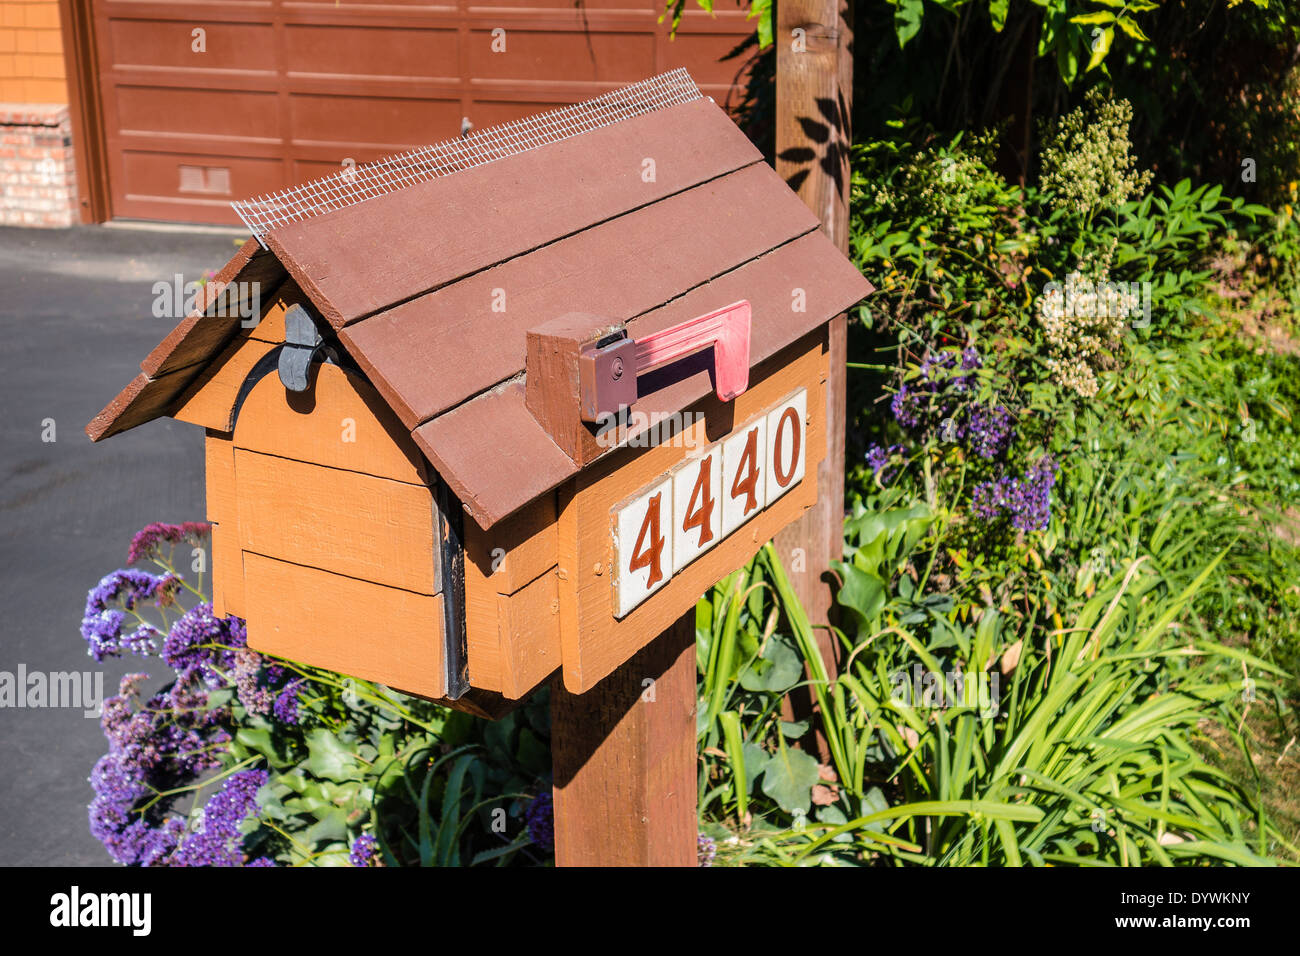 post box outside american wooden stockfotos post box outside american wooden bilder alamy. Black Bedroom Furniture Sets. Home Design Ideas